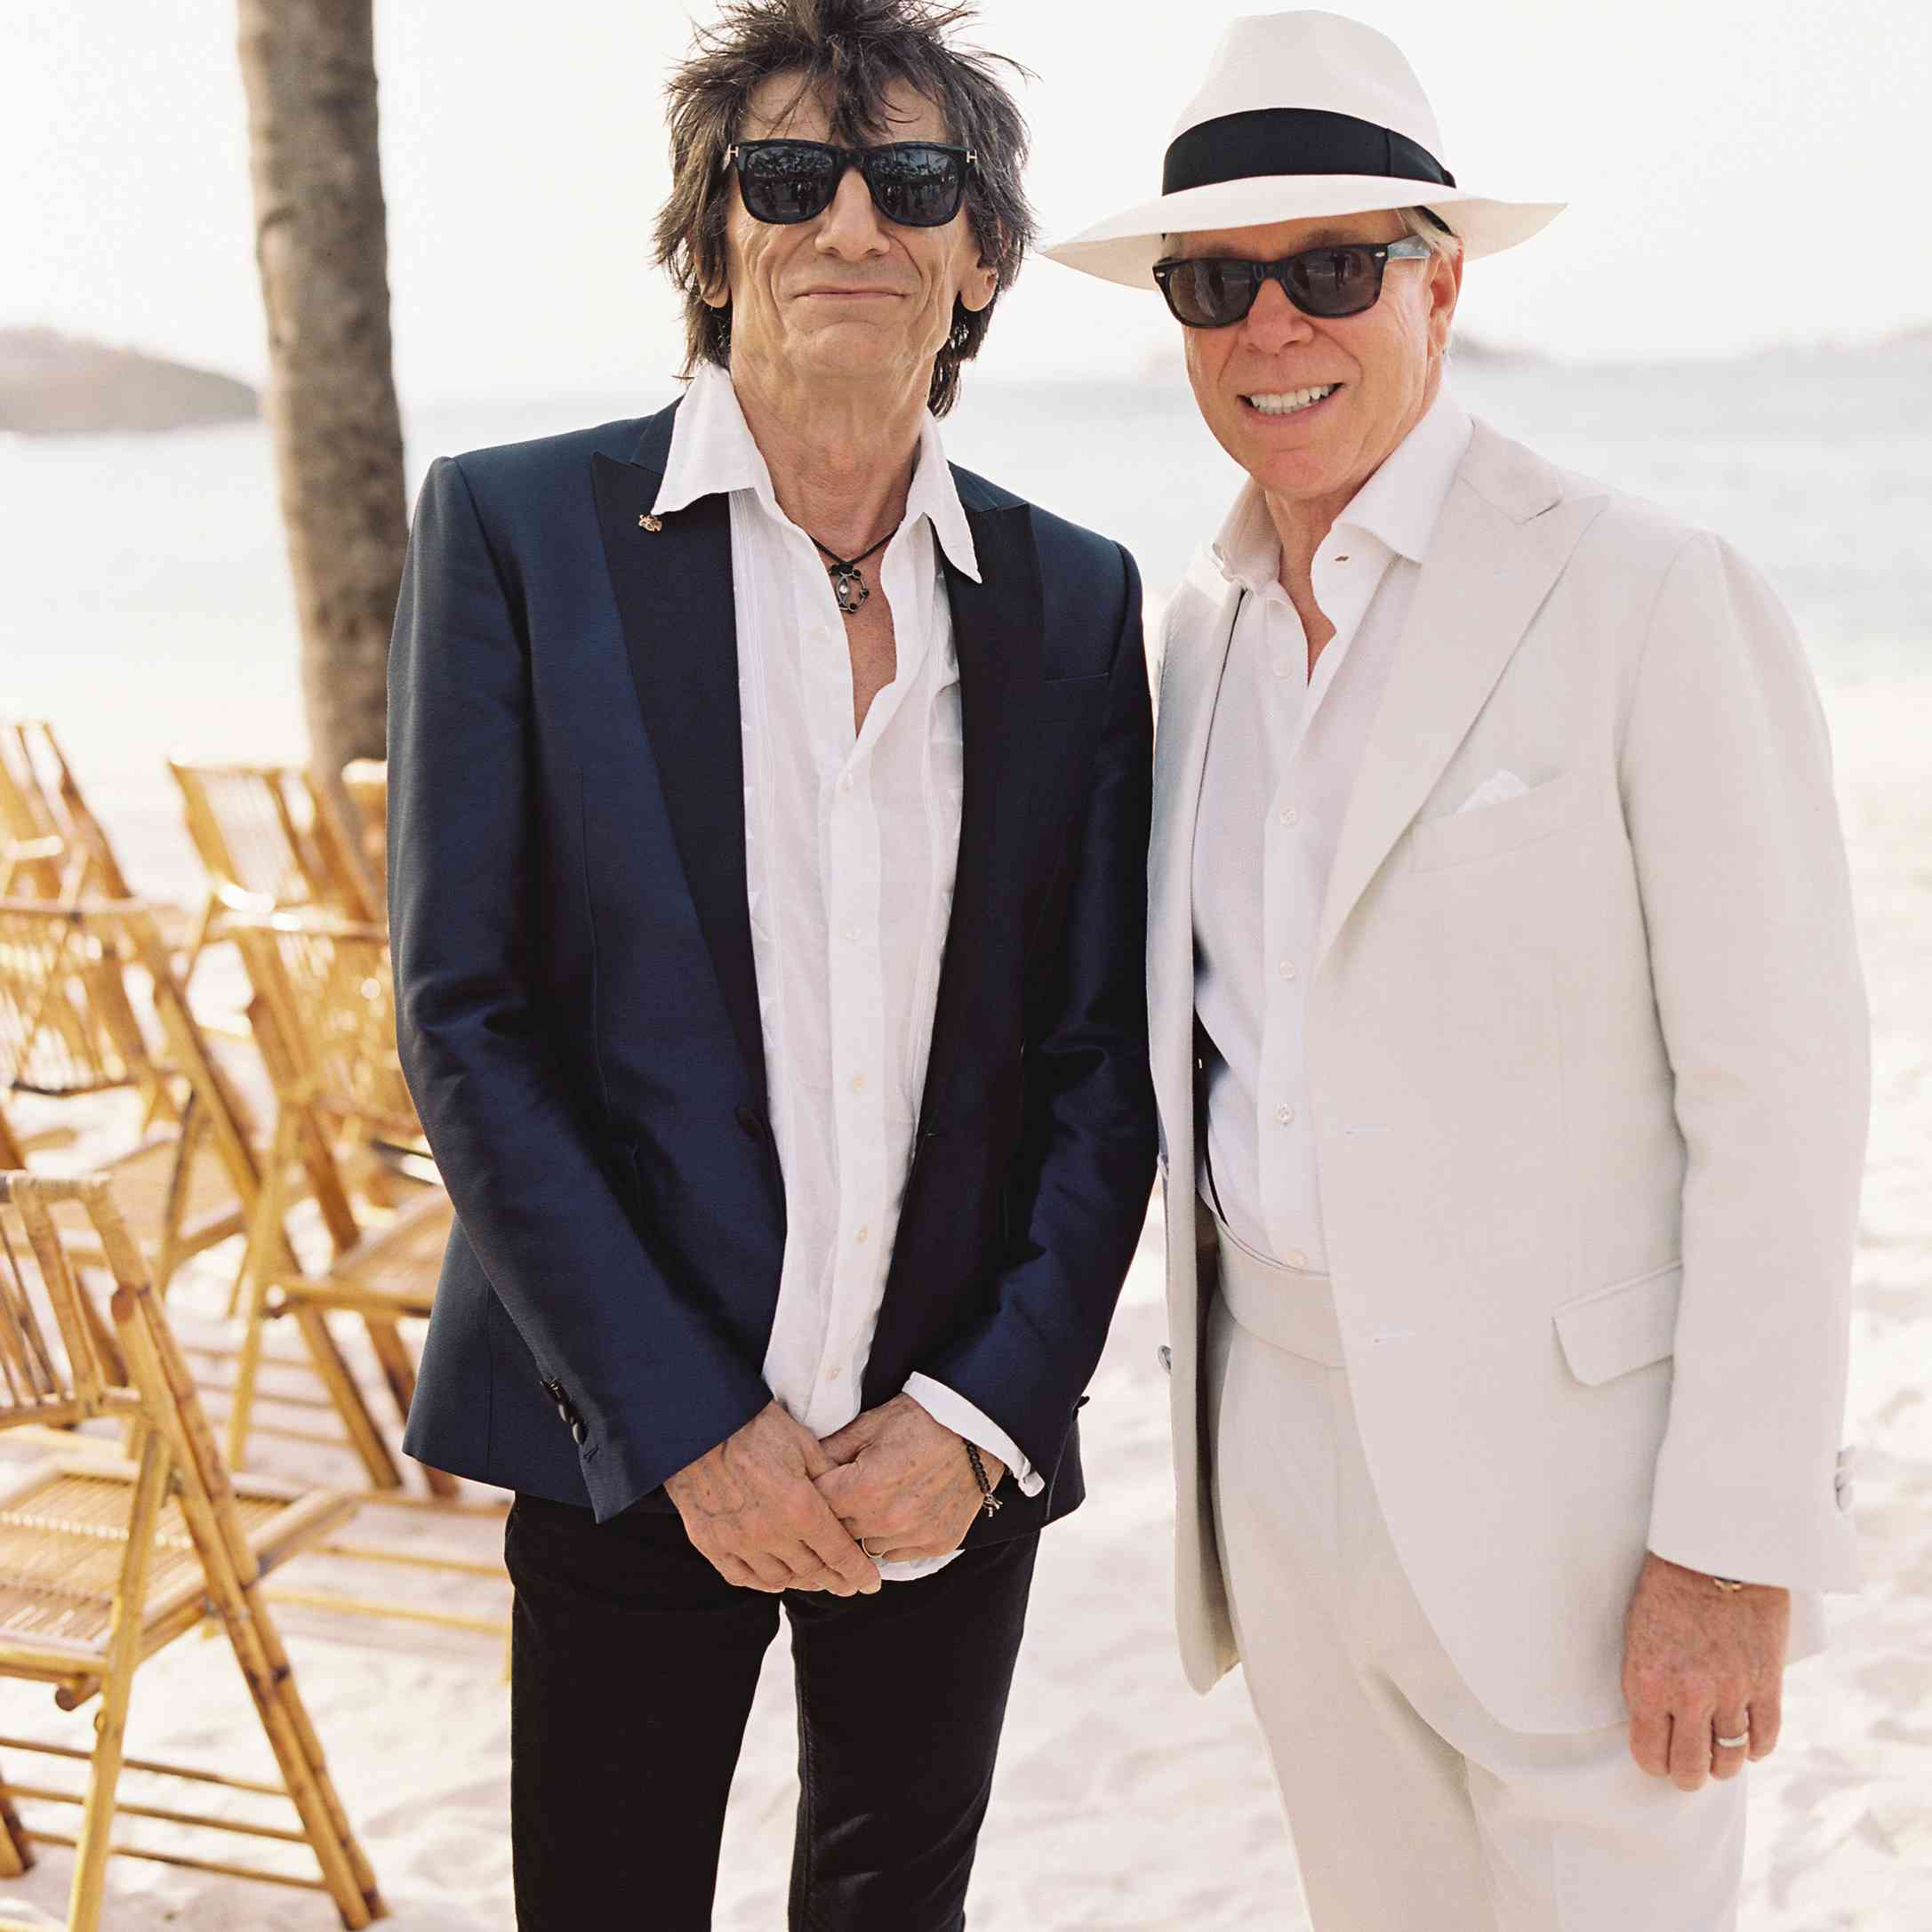 ronnie wood from the rolling stones and tommy hilfiger